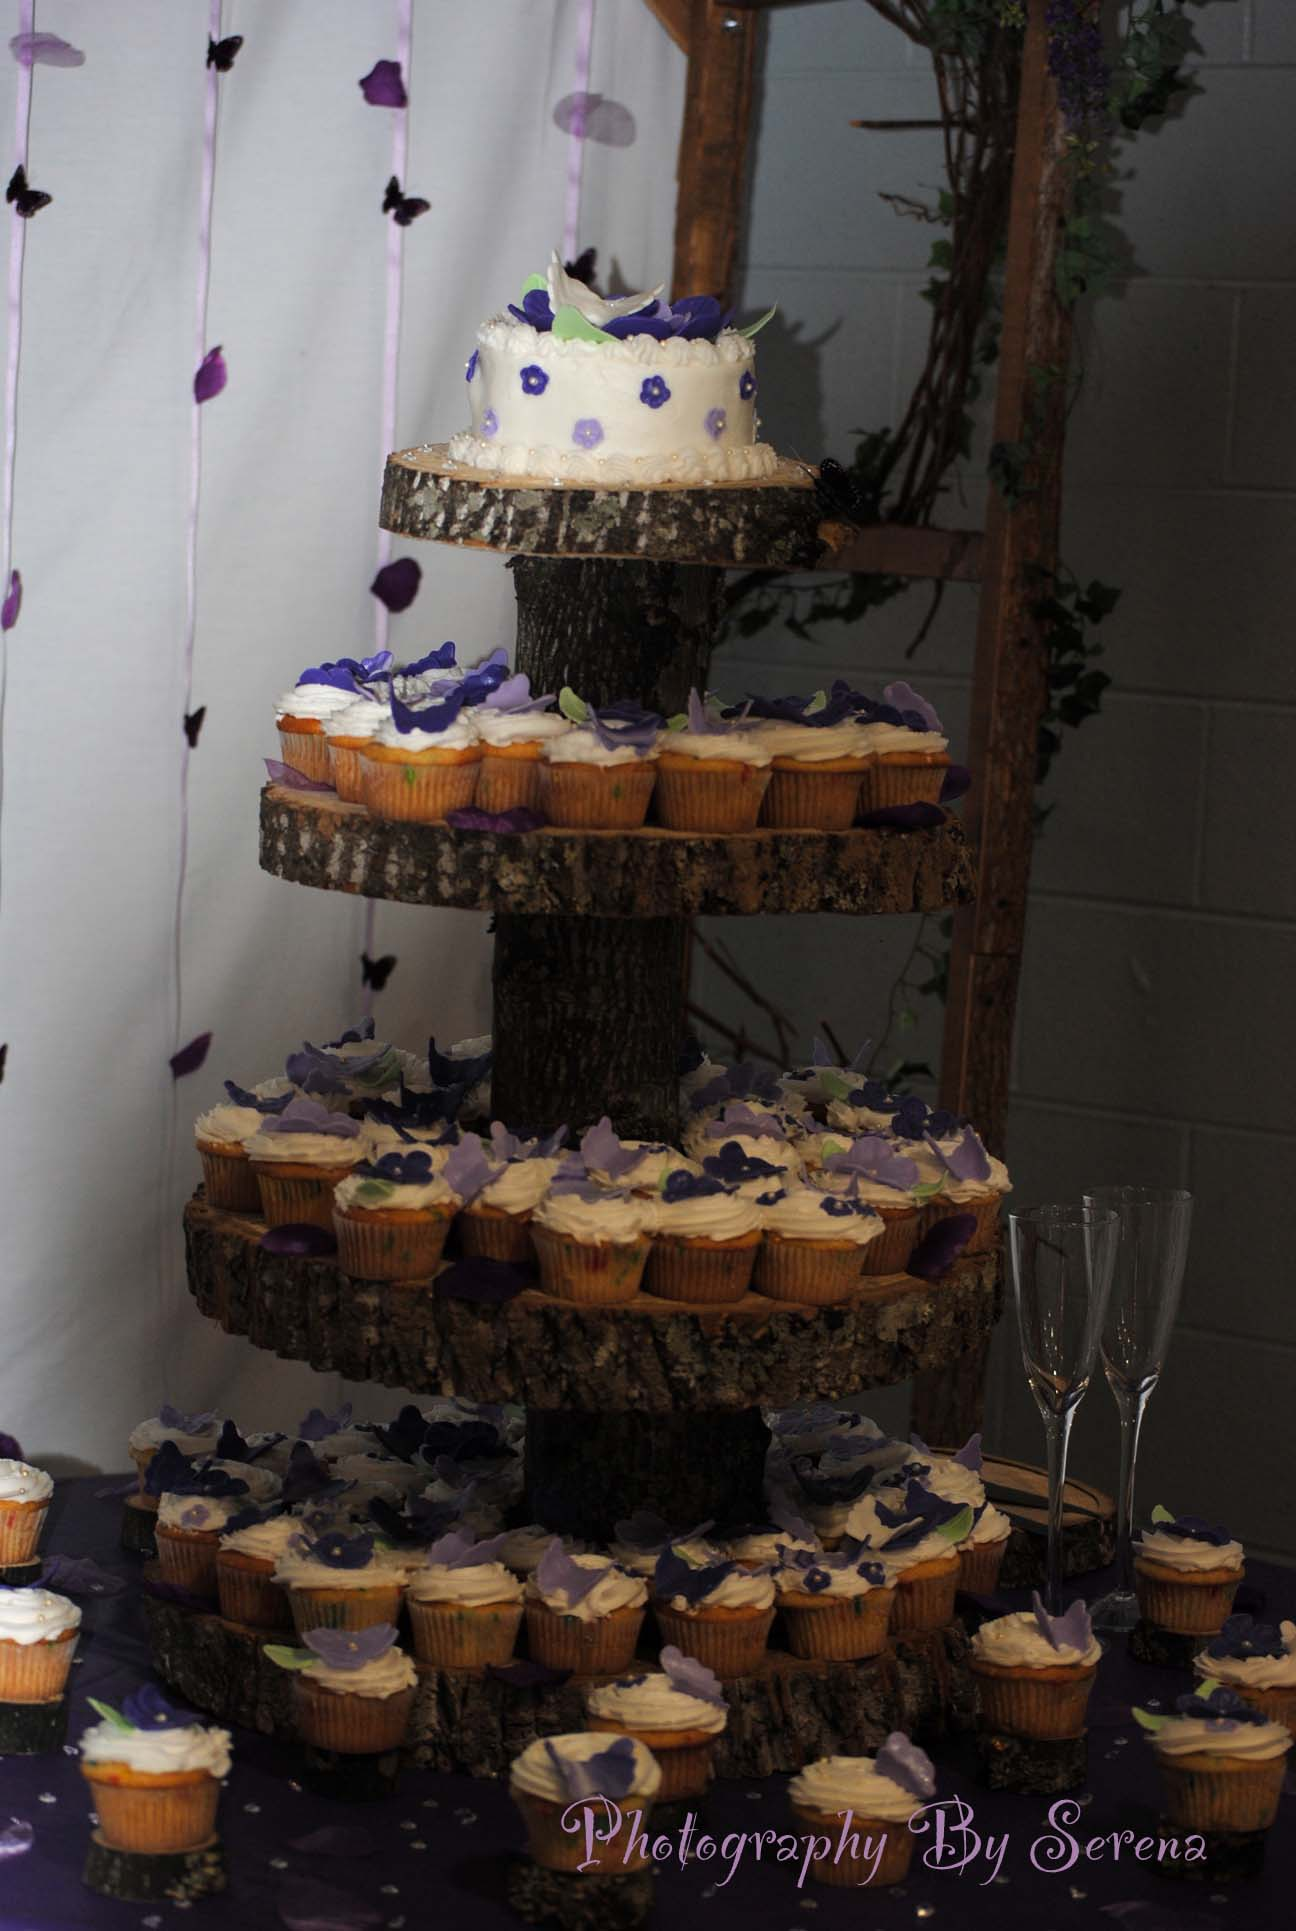 Uncategorized cupcake stands for weddings cheap - Uncategorized Cupcake Stands For Weddings Cheap 3